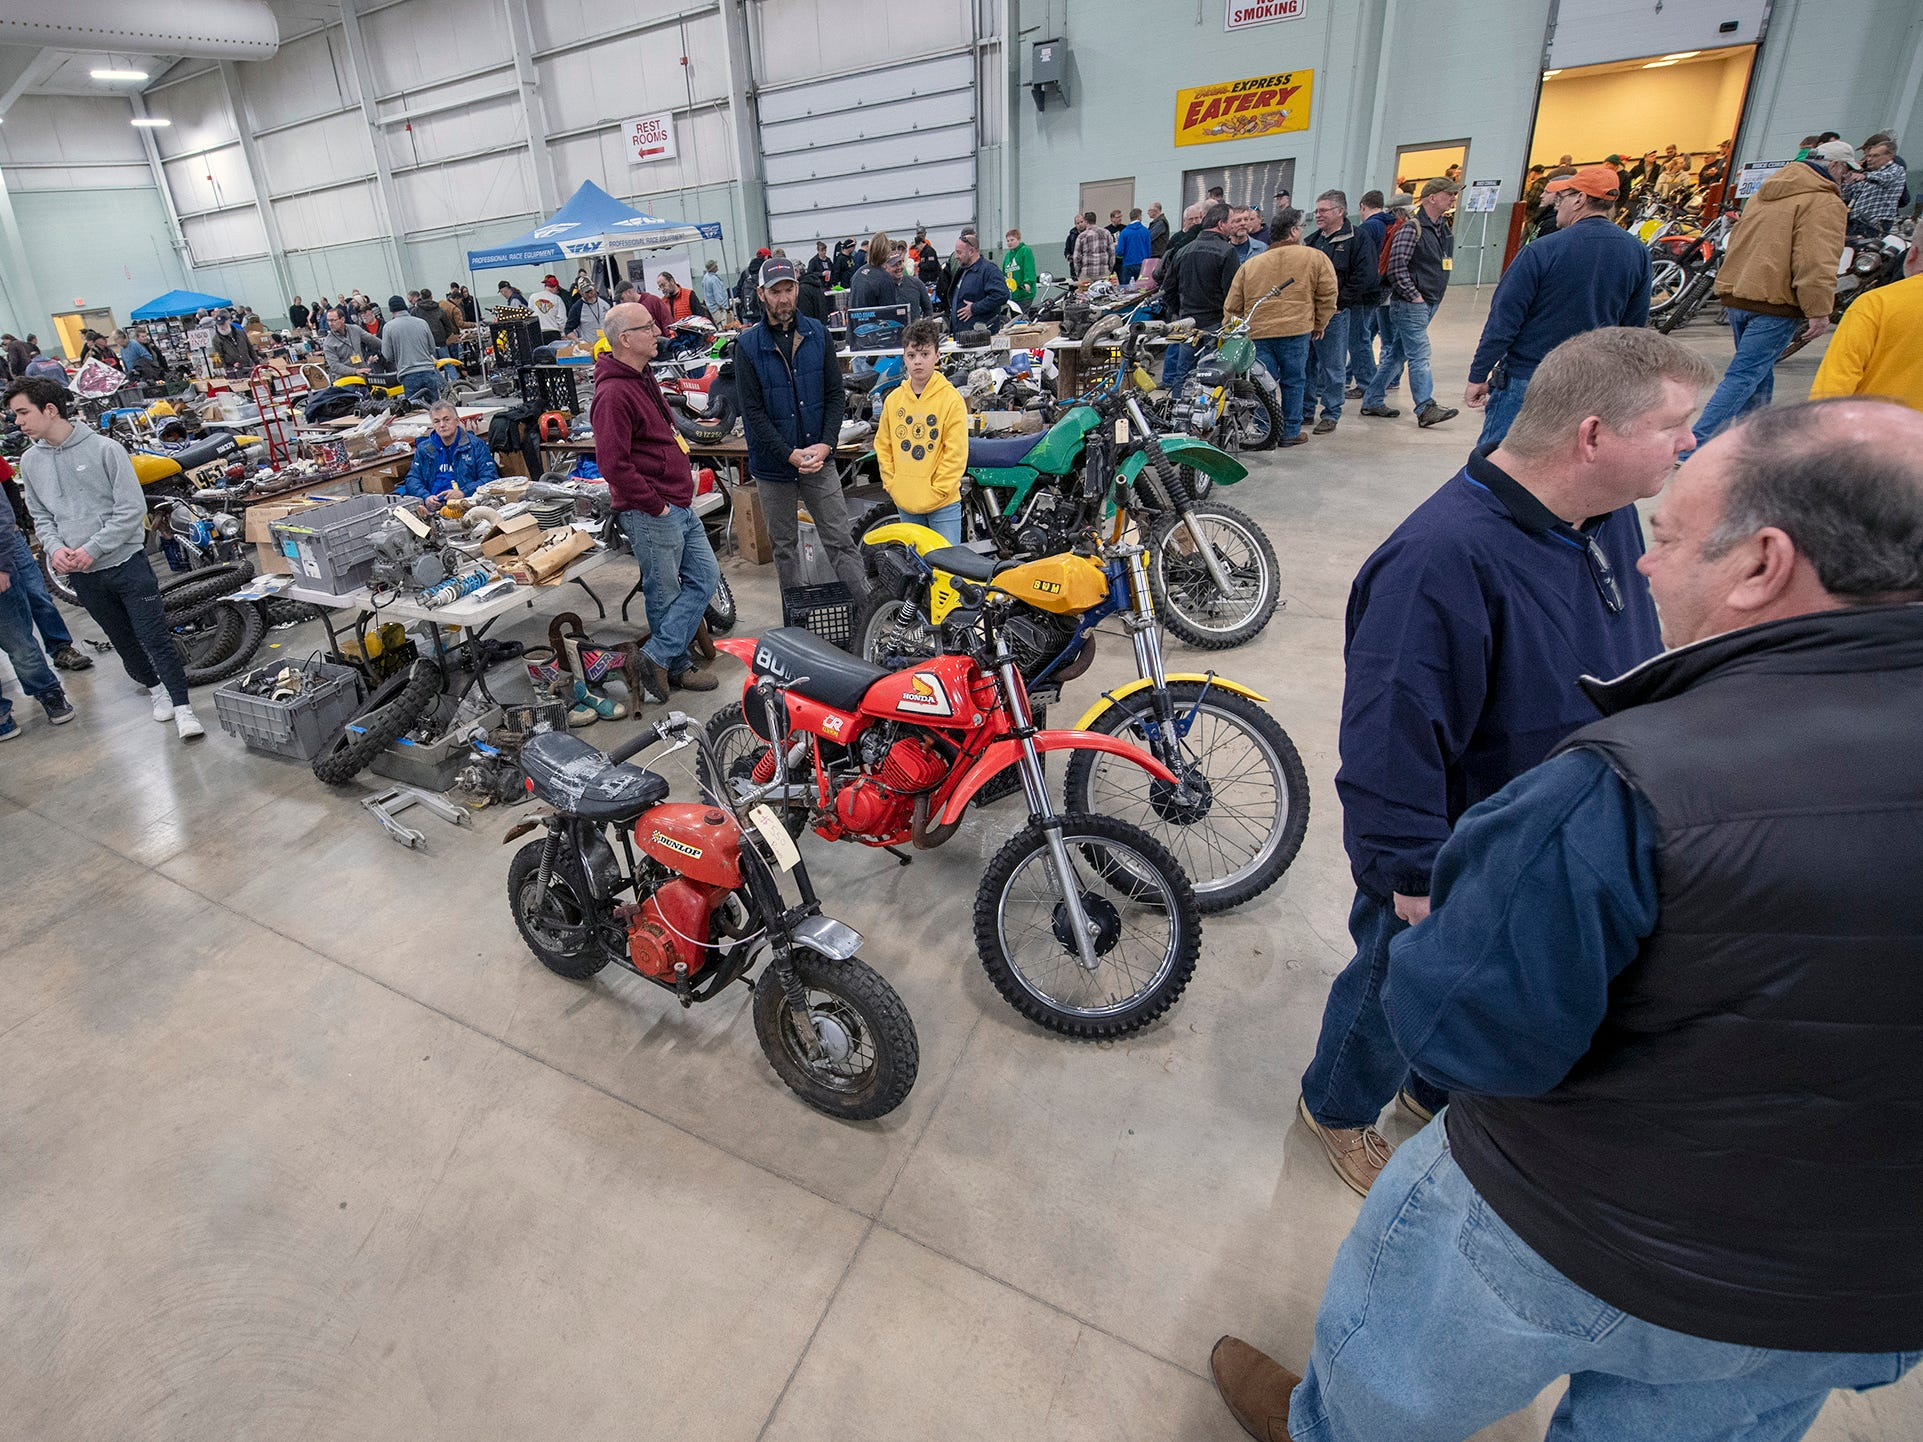 Visitors look over used bikes and parts during the The Potomac Vintage Riders' York Swap Meet Sunday January 27, 2019 at the York Expo Center.